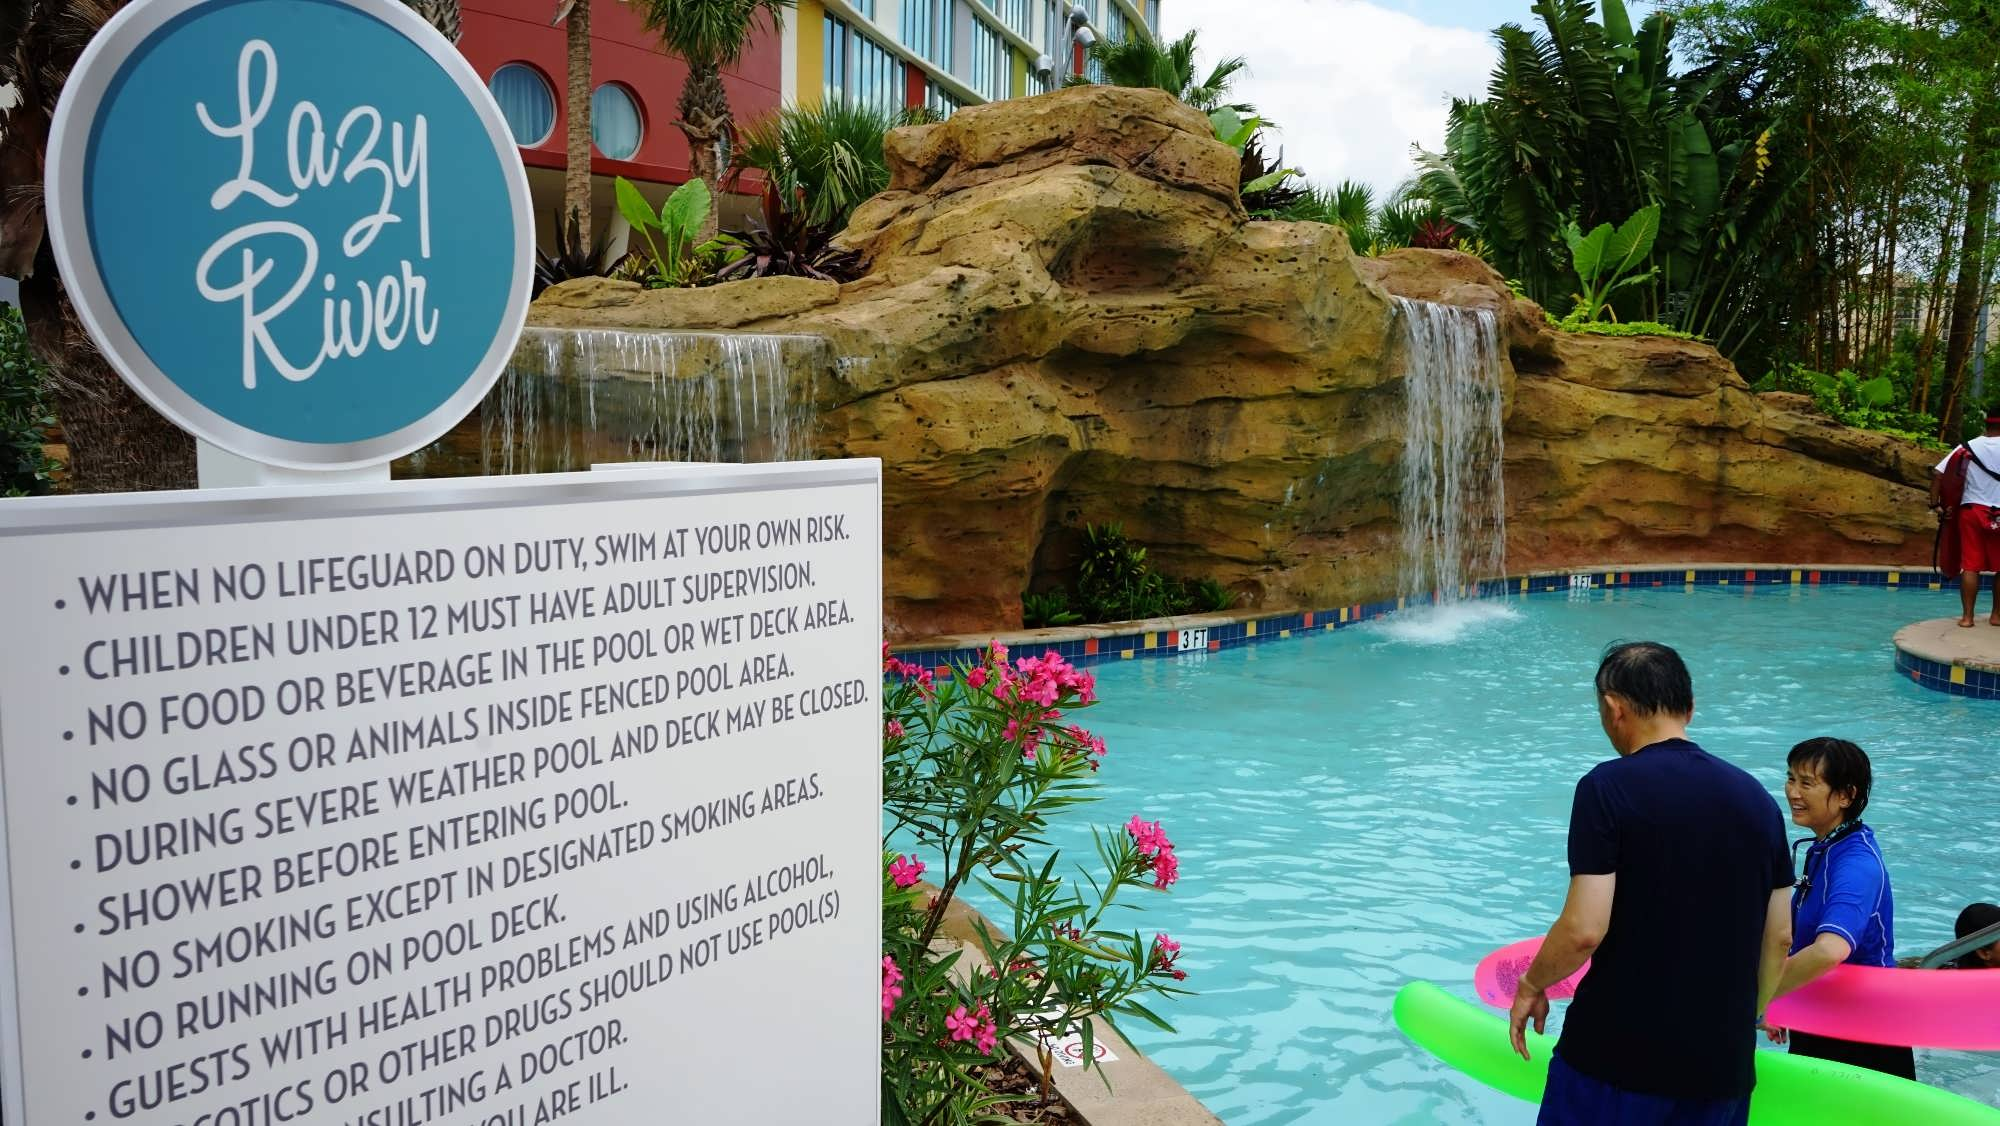 Guests enter the lazy river at Cabana Bay Beach Resort, as waterfalls spill down the rockwork into the river.